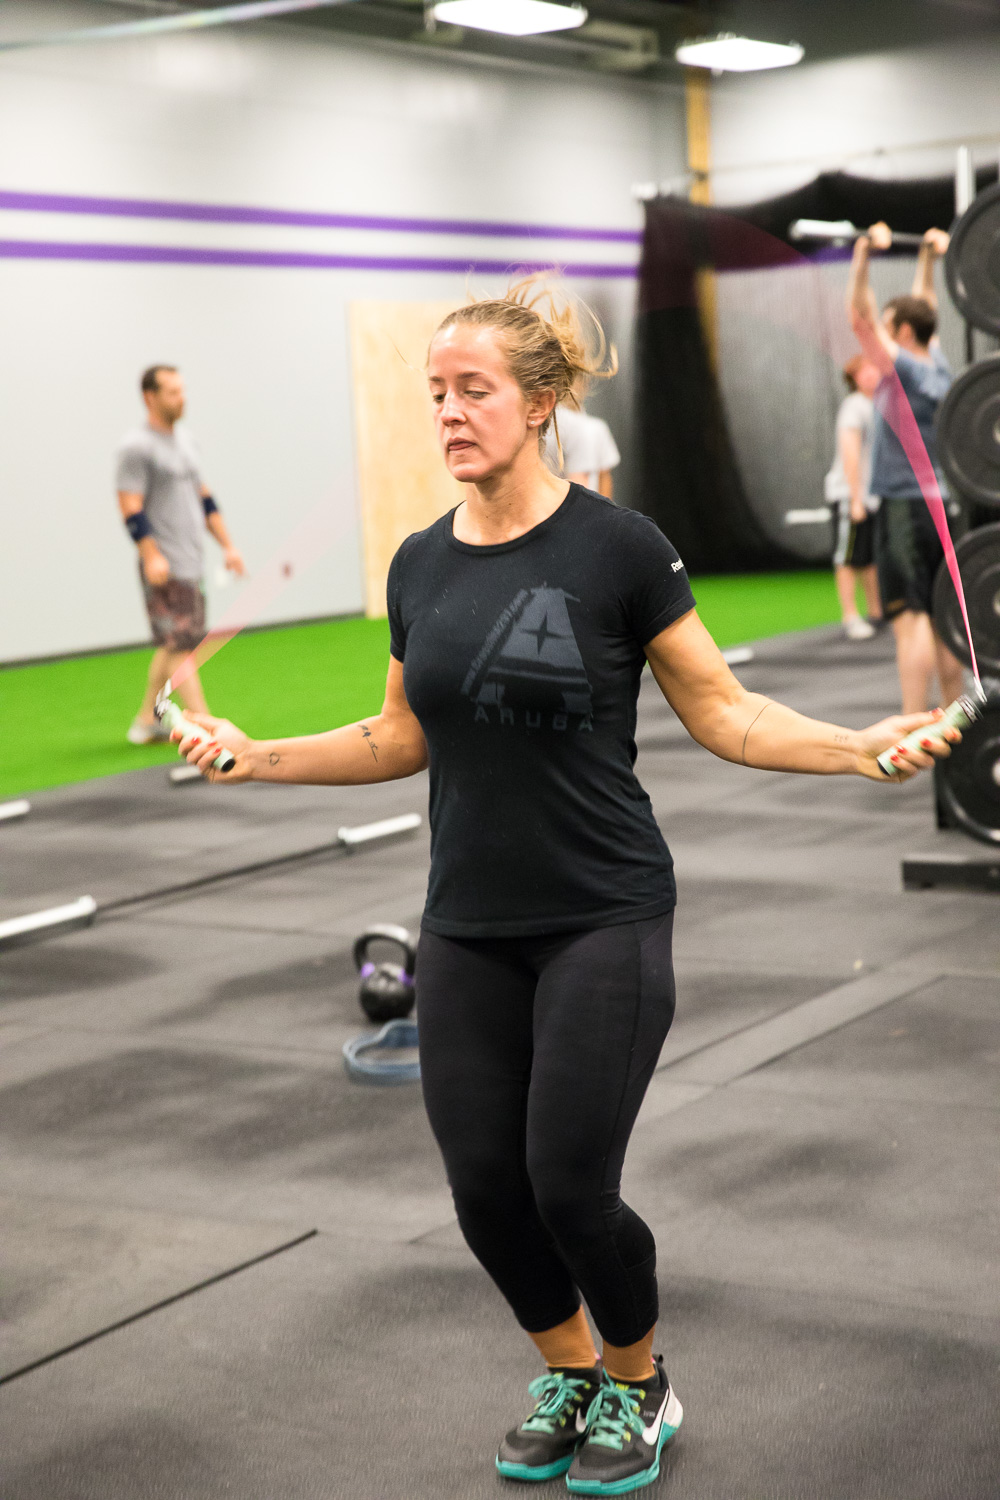 crossfit_homeward-23.jpg